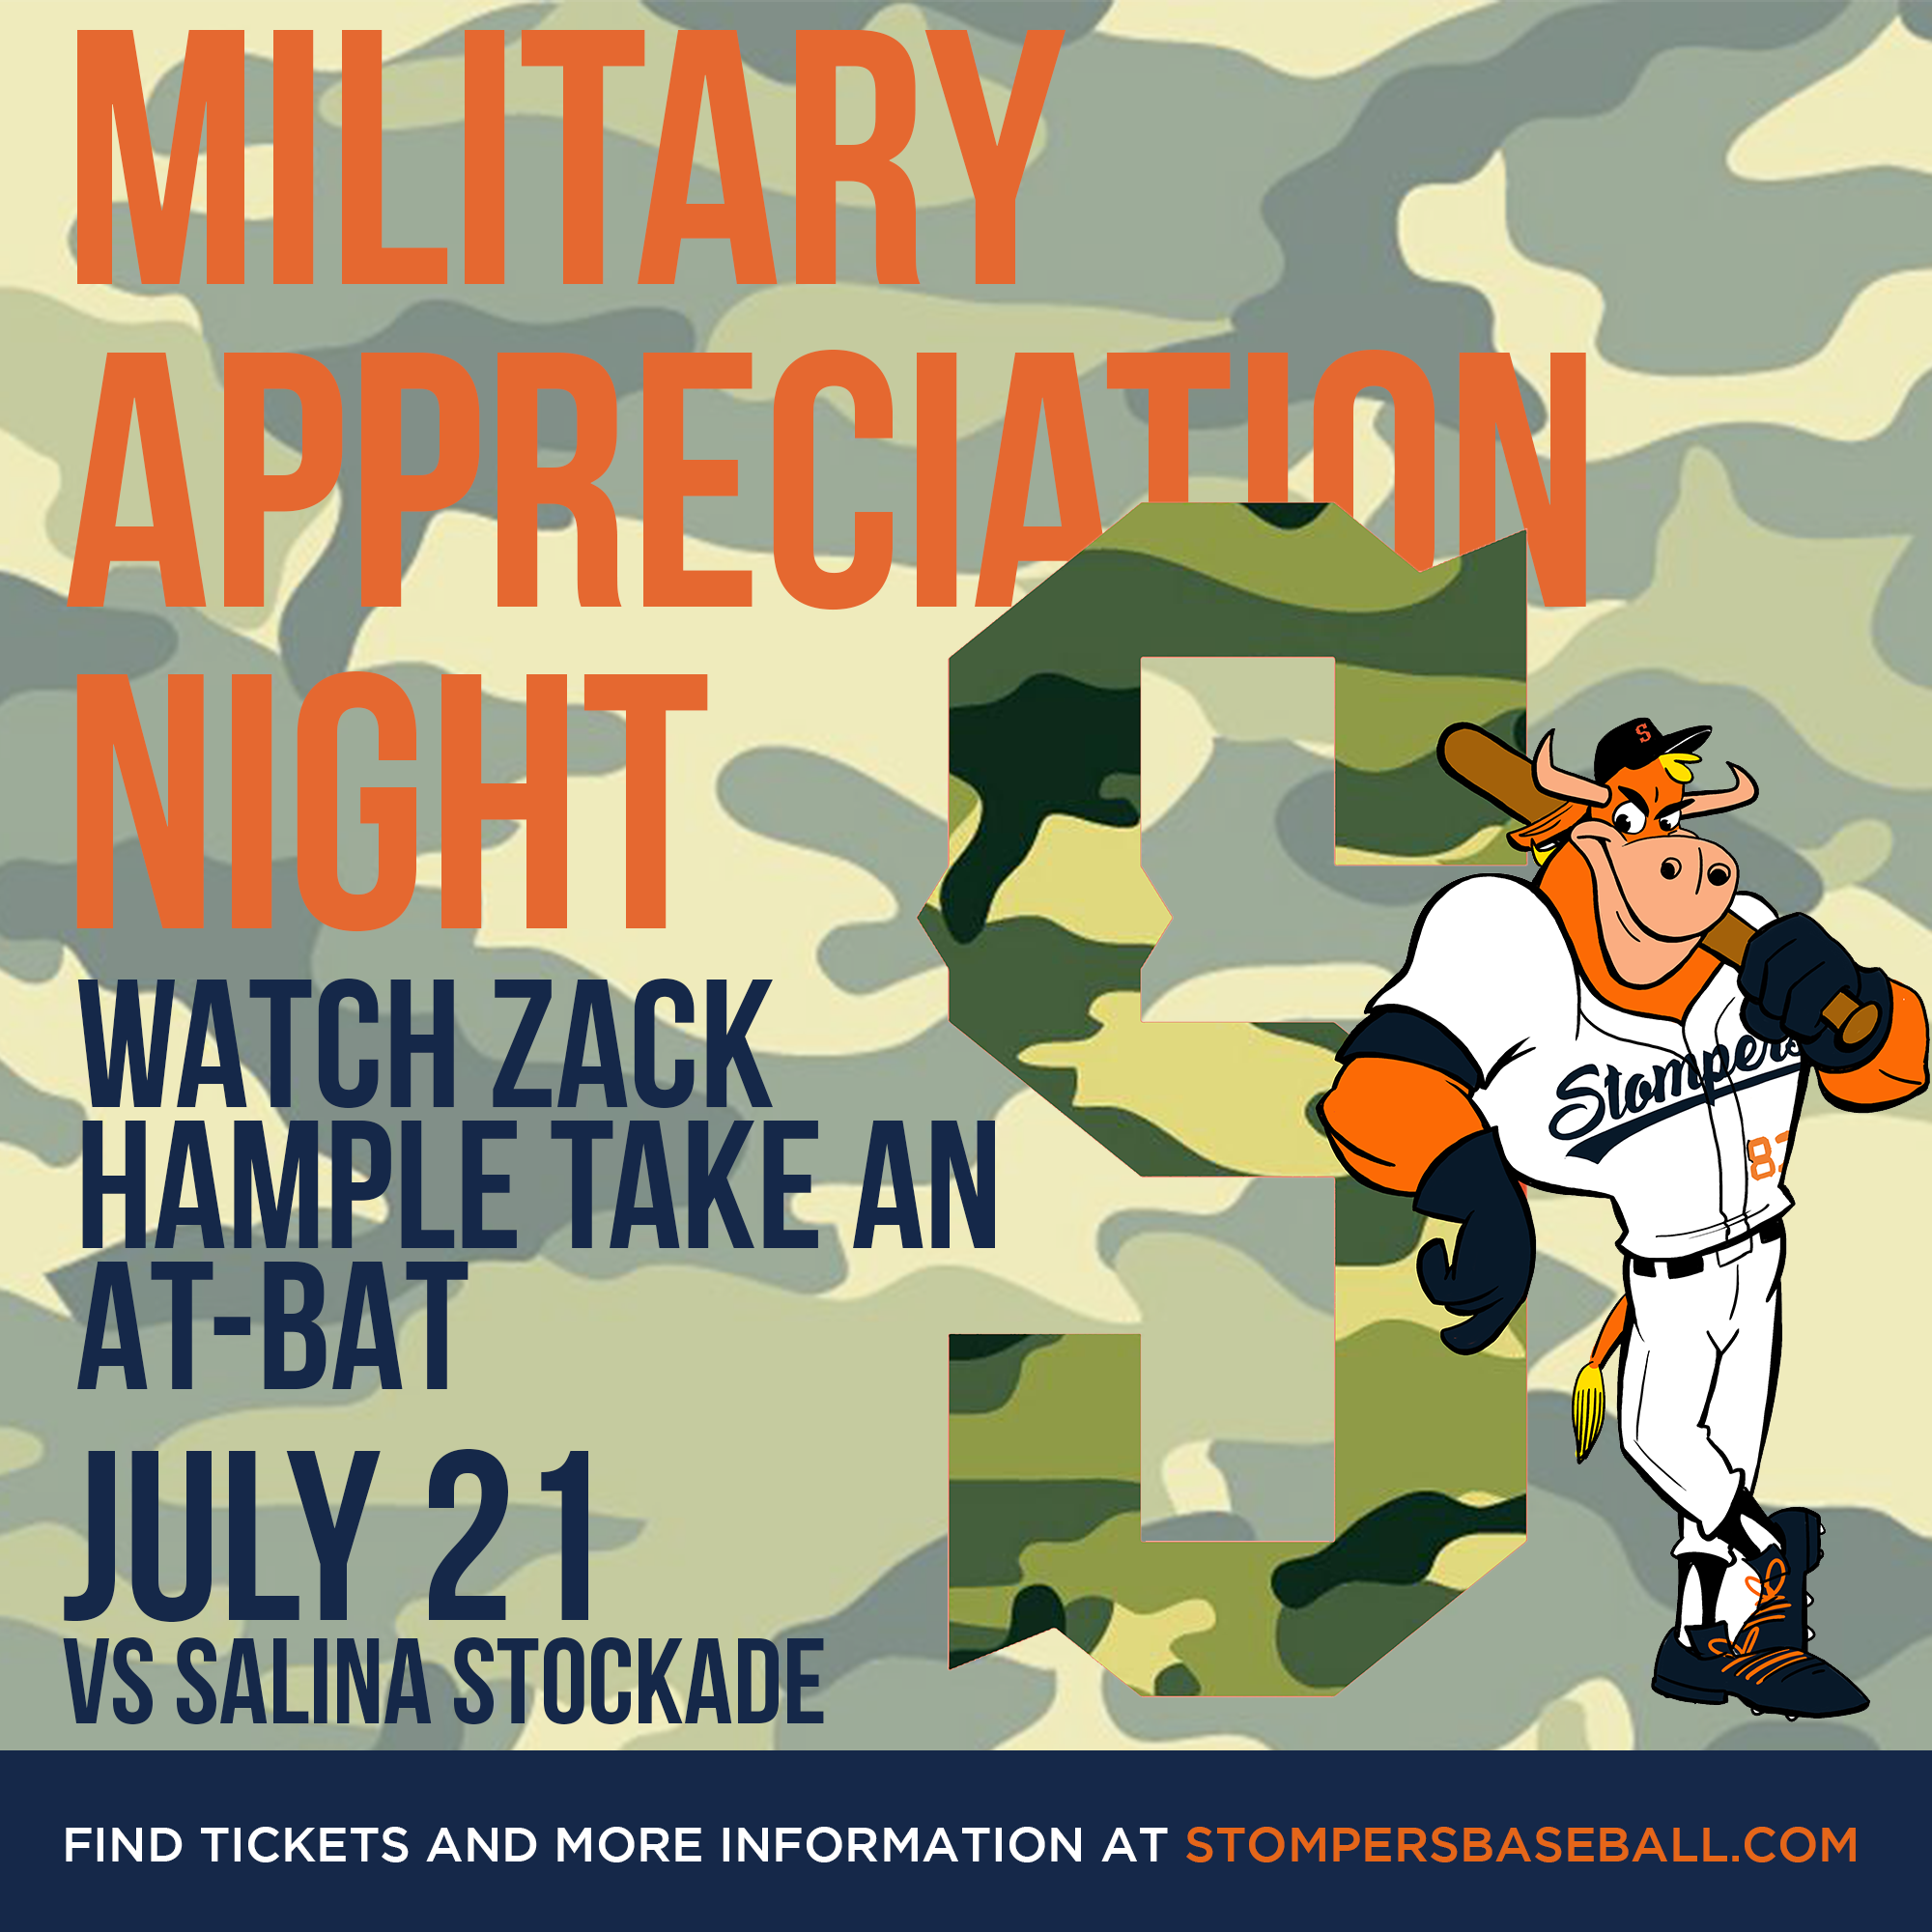 July 21: Military Appreciation Night - Come out to Palooza Park at Arnold Field and support those who protect us during Military Appreciation Night and watch Zack Hample take an-bat.